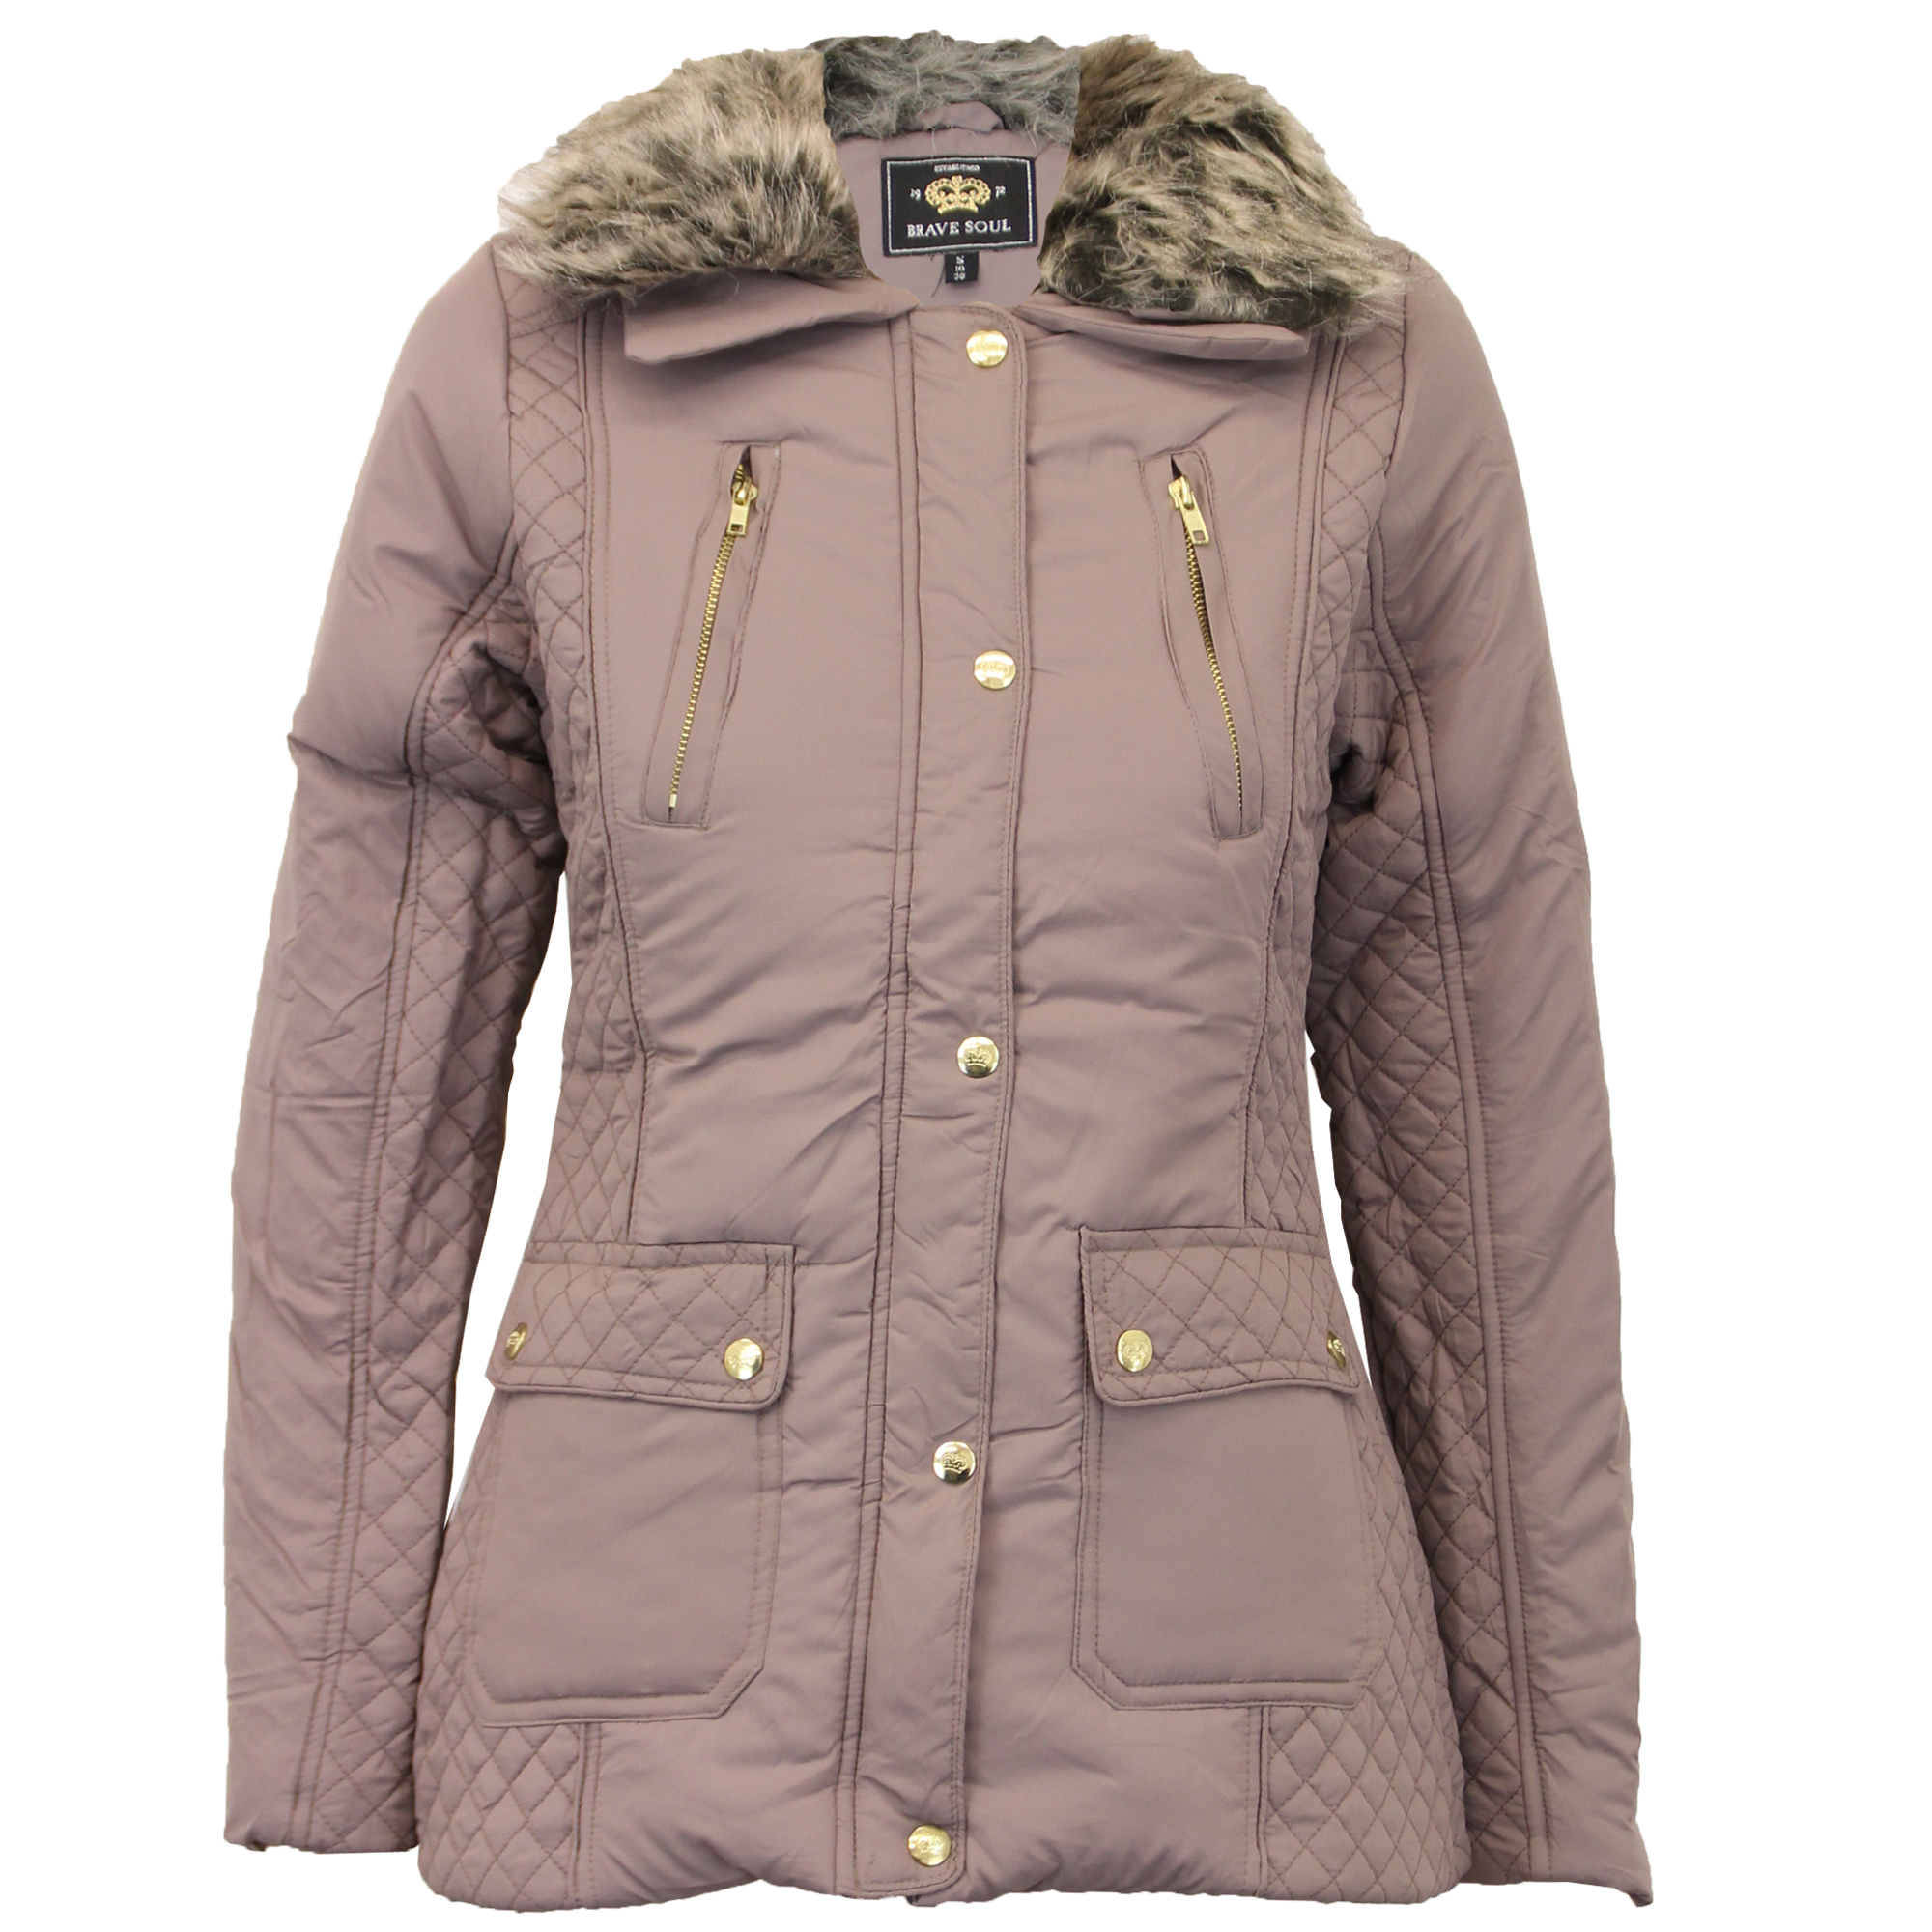 Fur lined coats for women